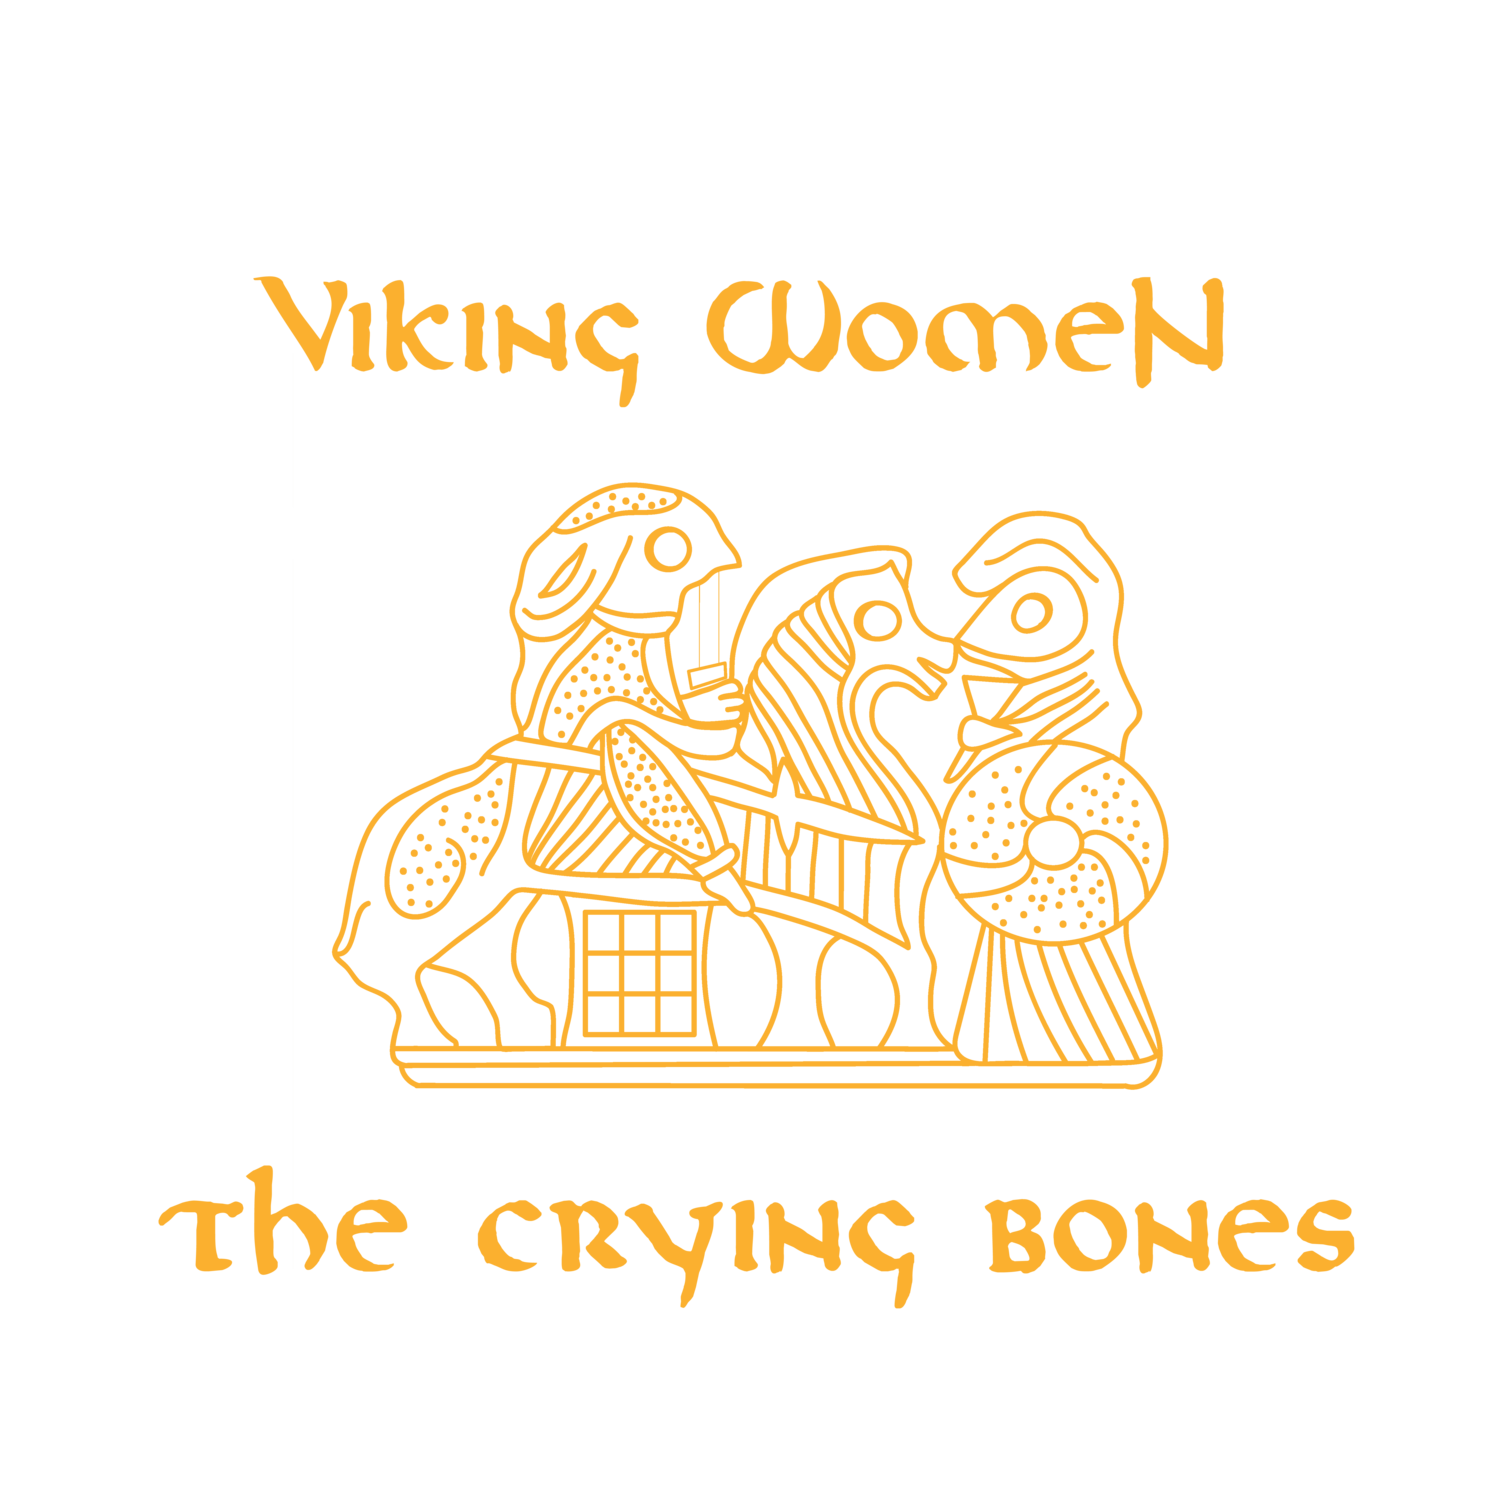 Viking Women: The Crying Bones